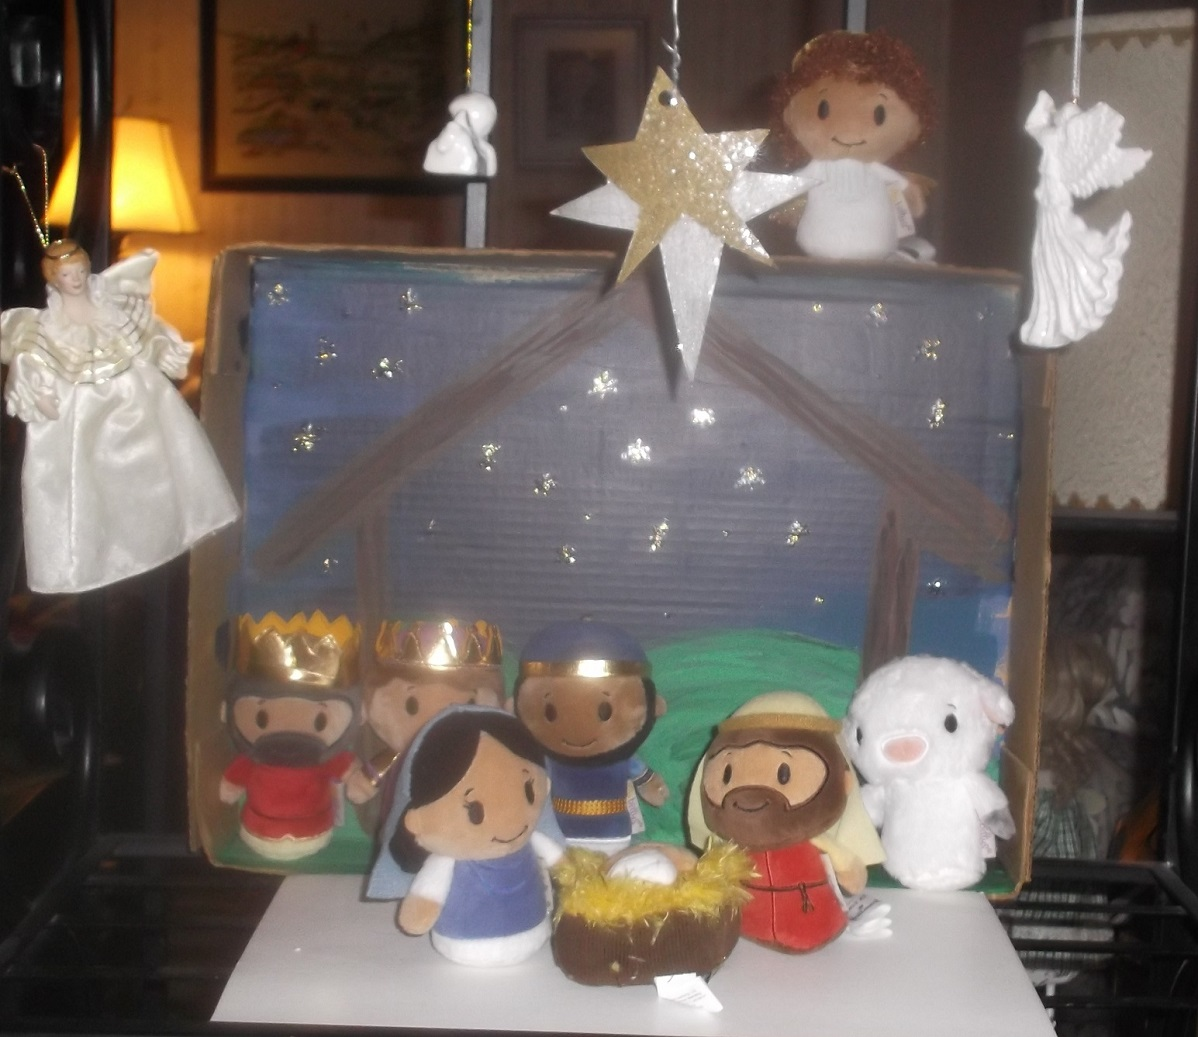 Nativity set up last year